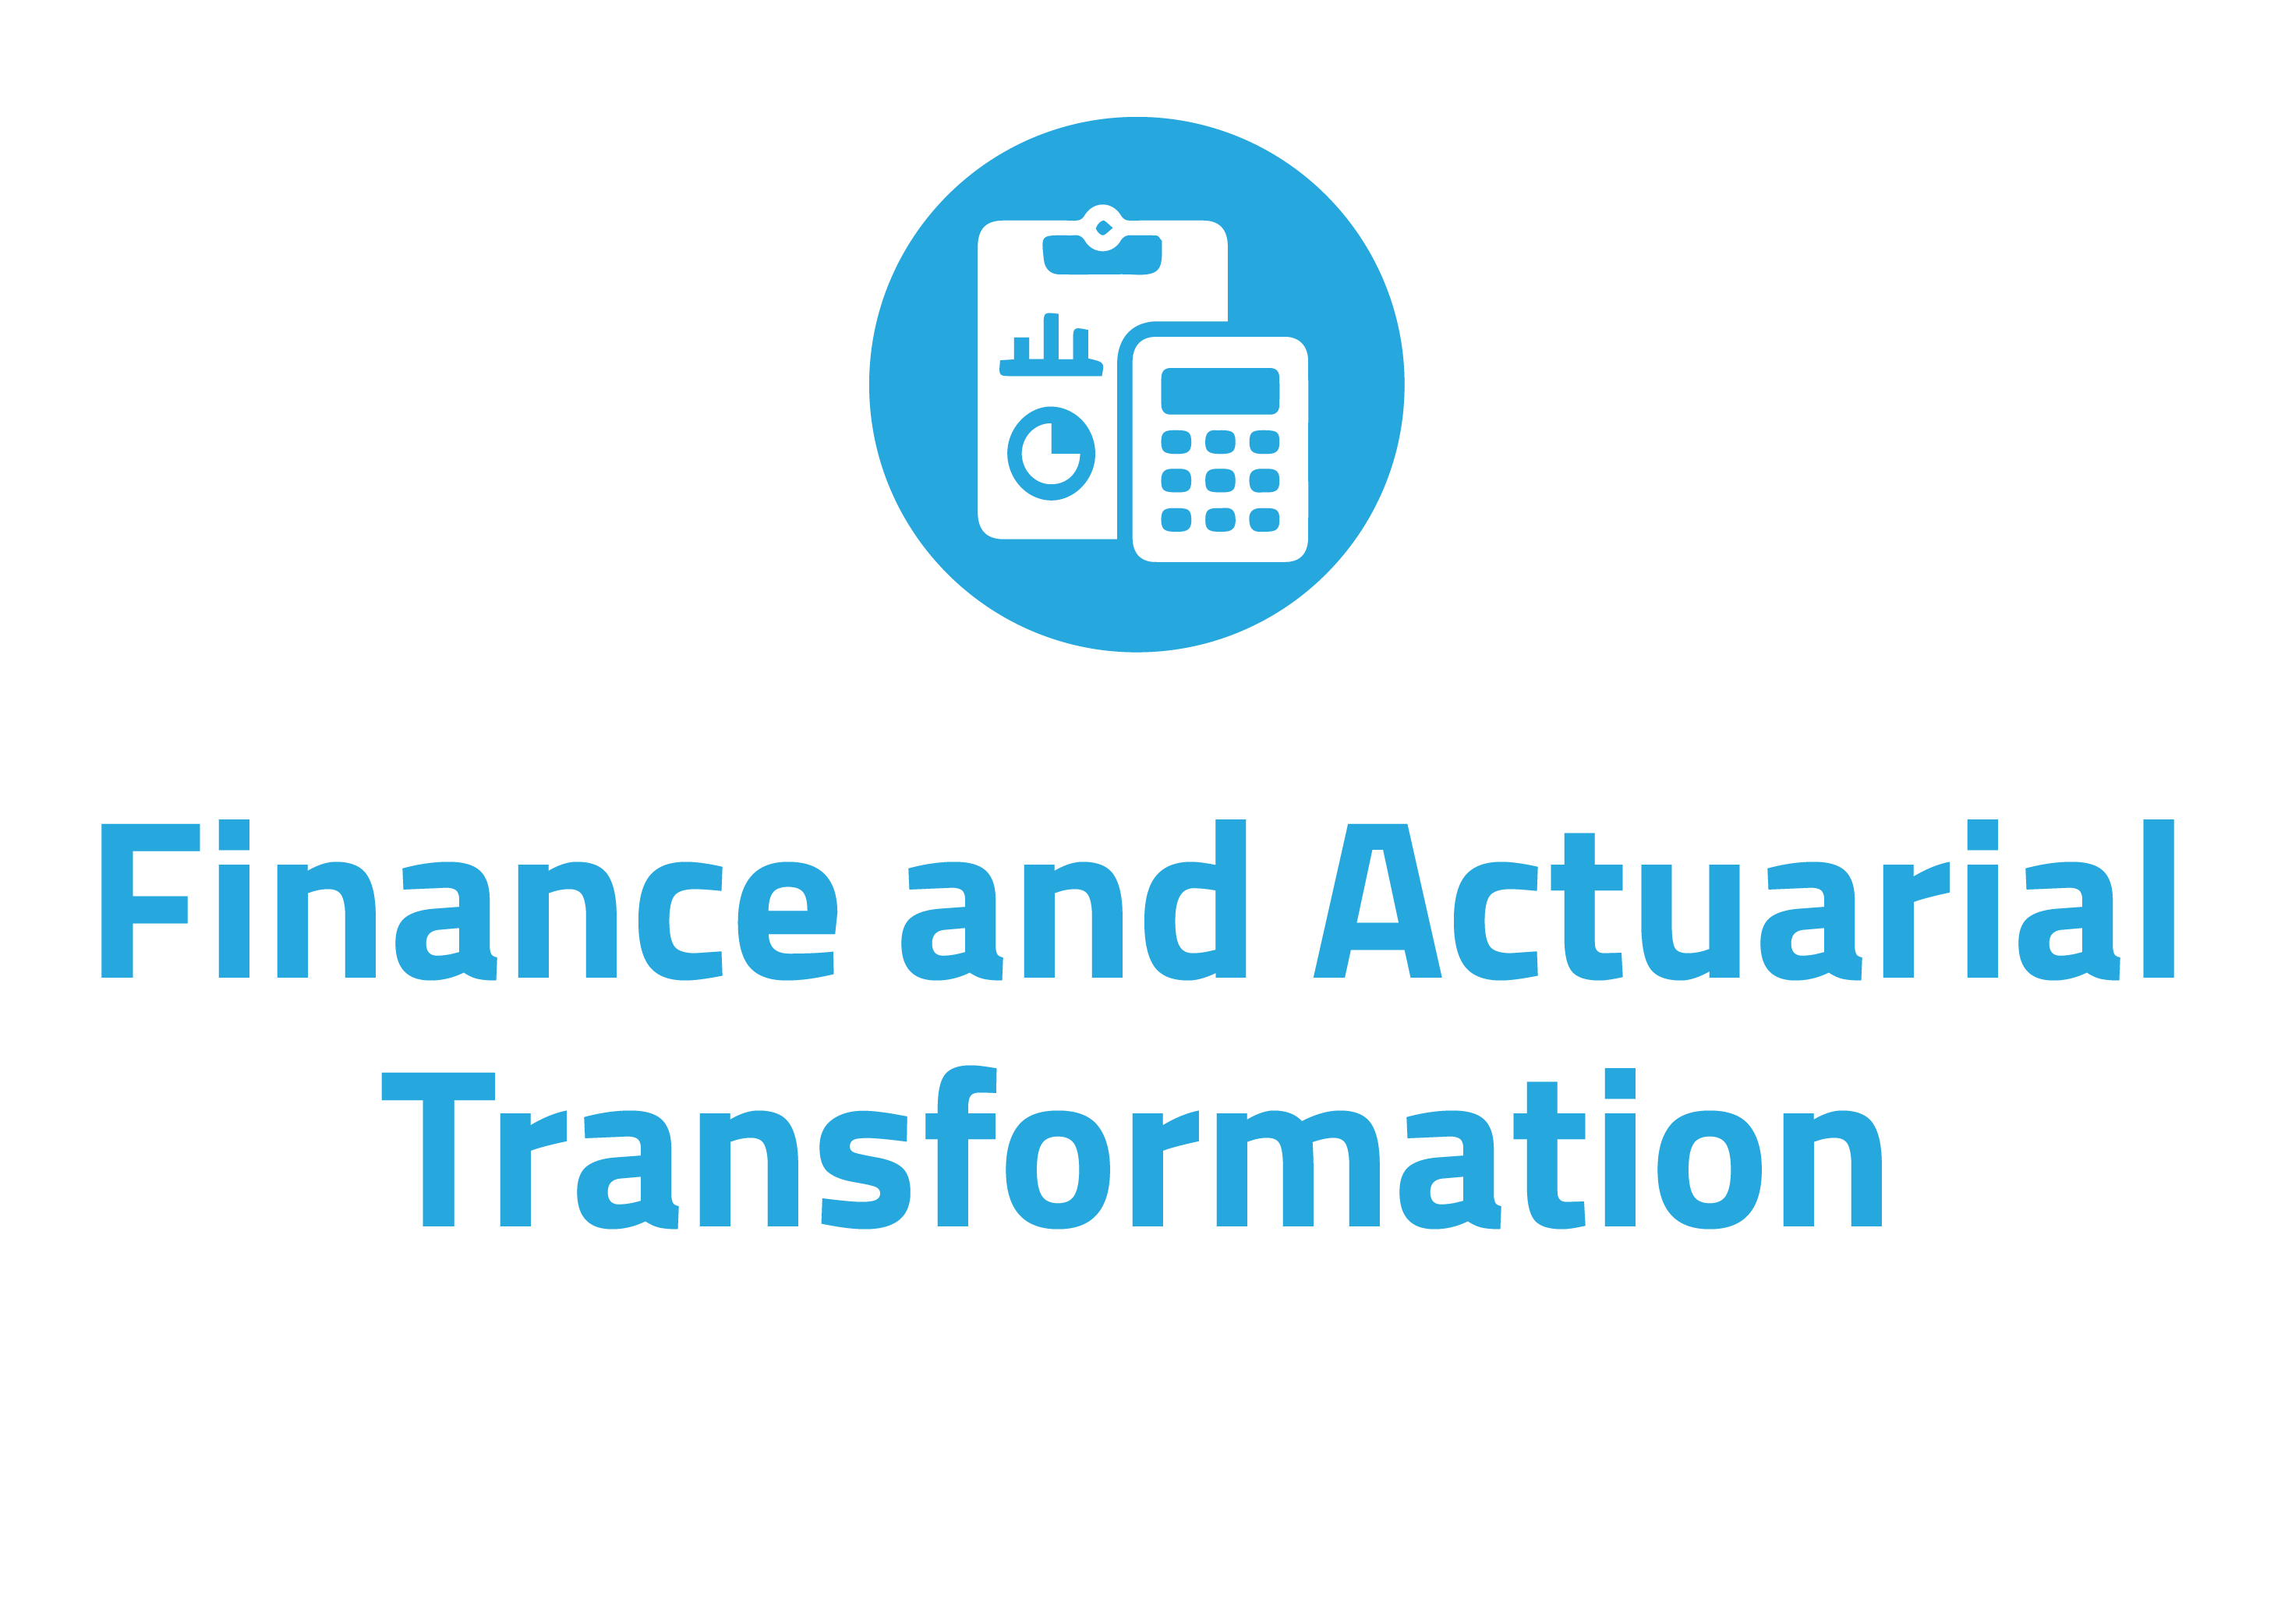 Finance and actuarial transformation consultancy for financial services industry in Ireland